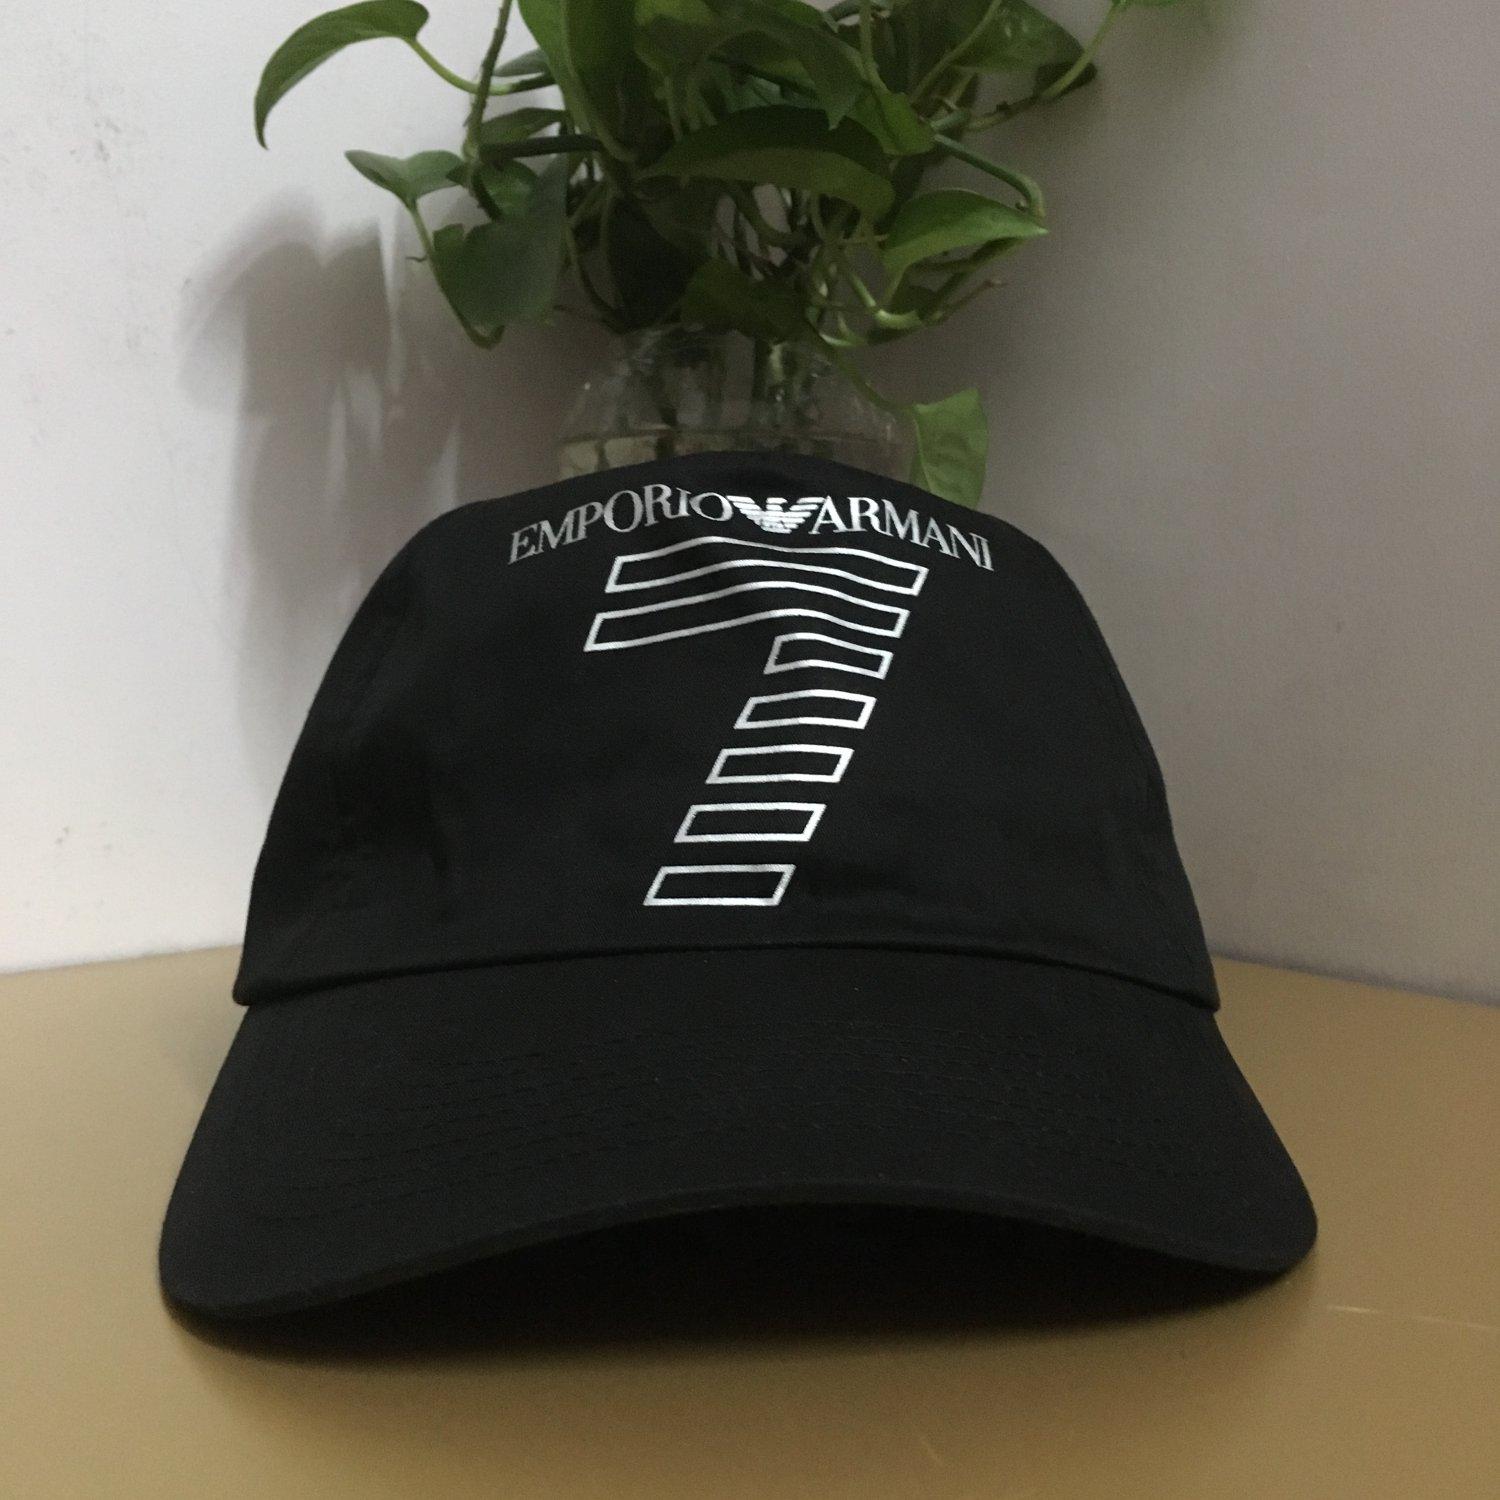 MEN caps hats streetwear sportwear accessories creative gifts number 7 cotton caps